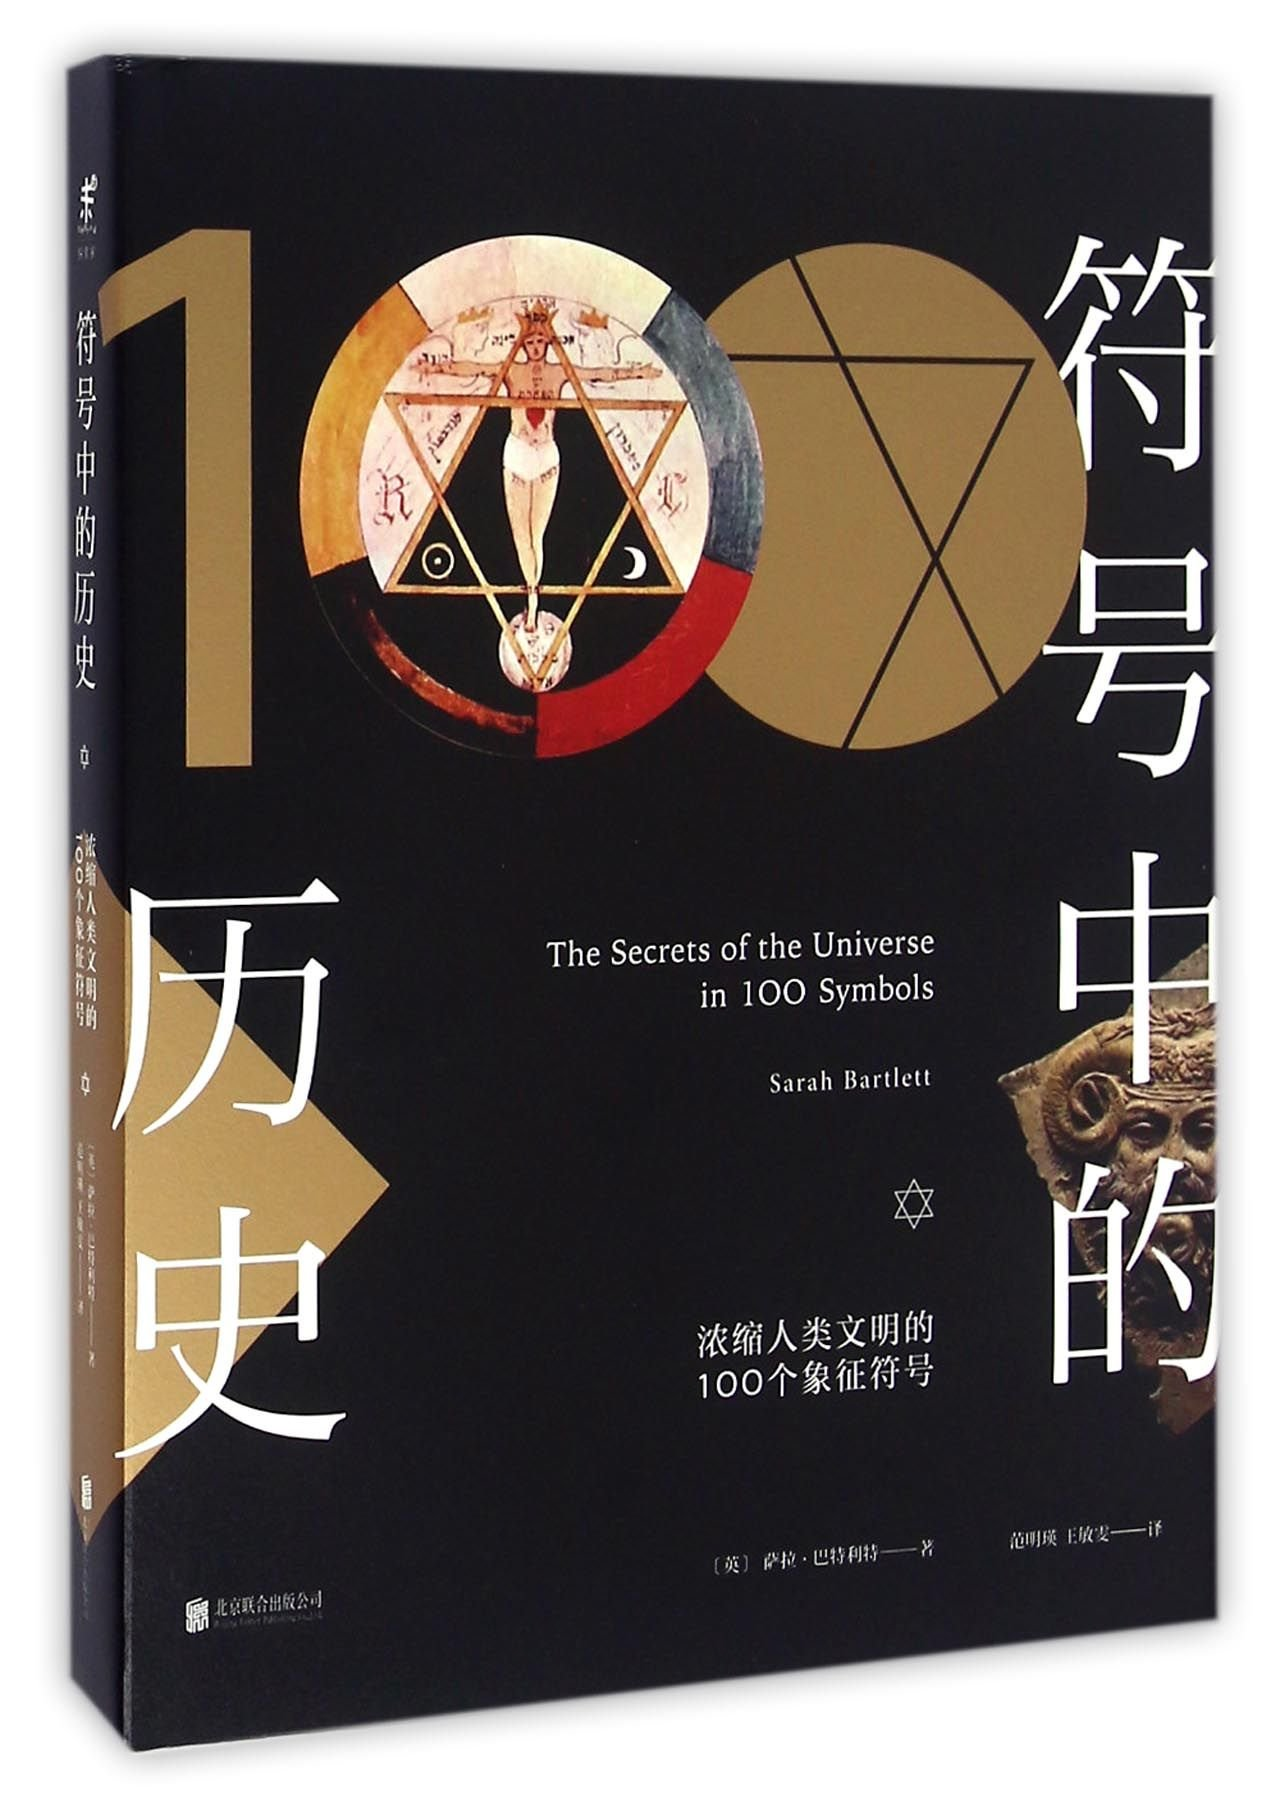 The Secrets of the Universe in 100 Symbols (Chinese Edition) pdf